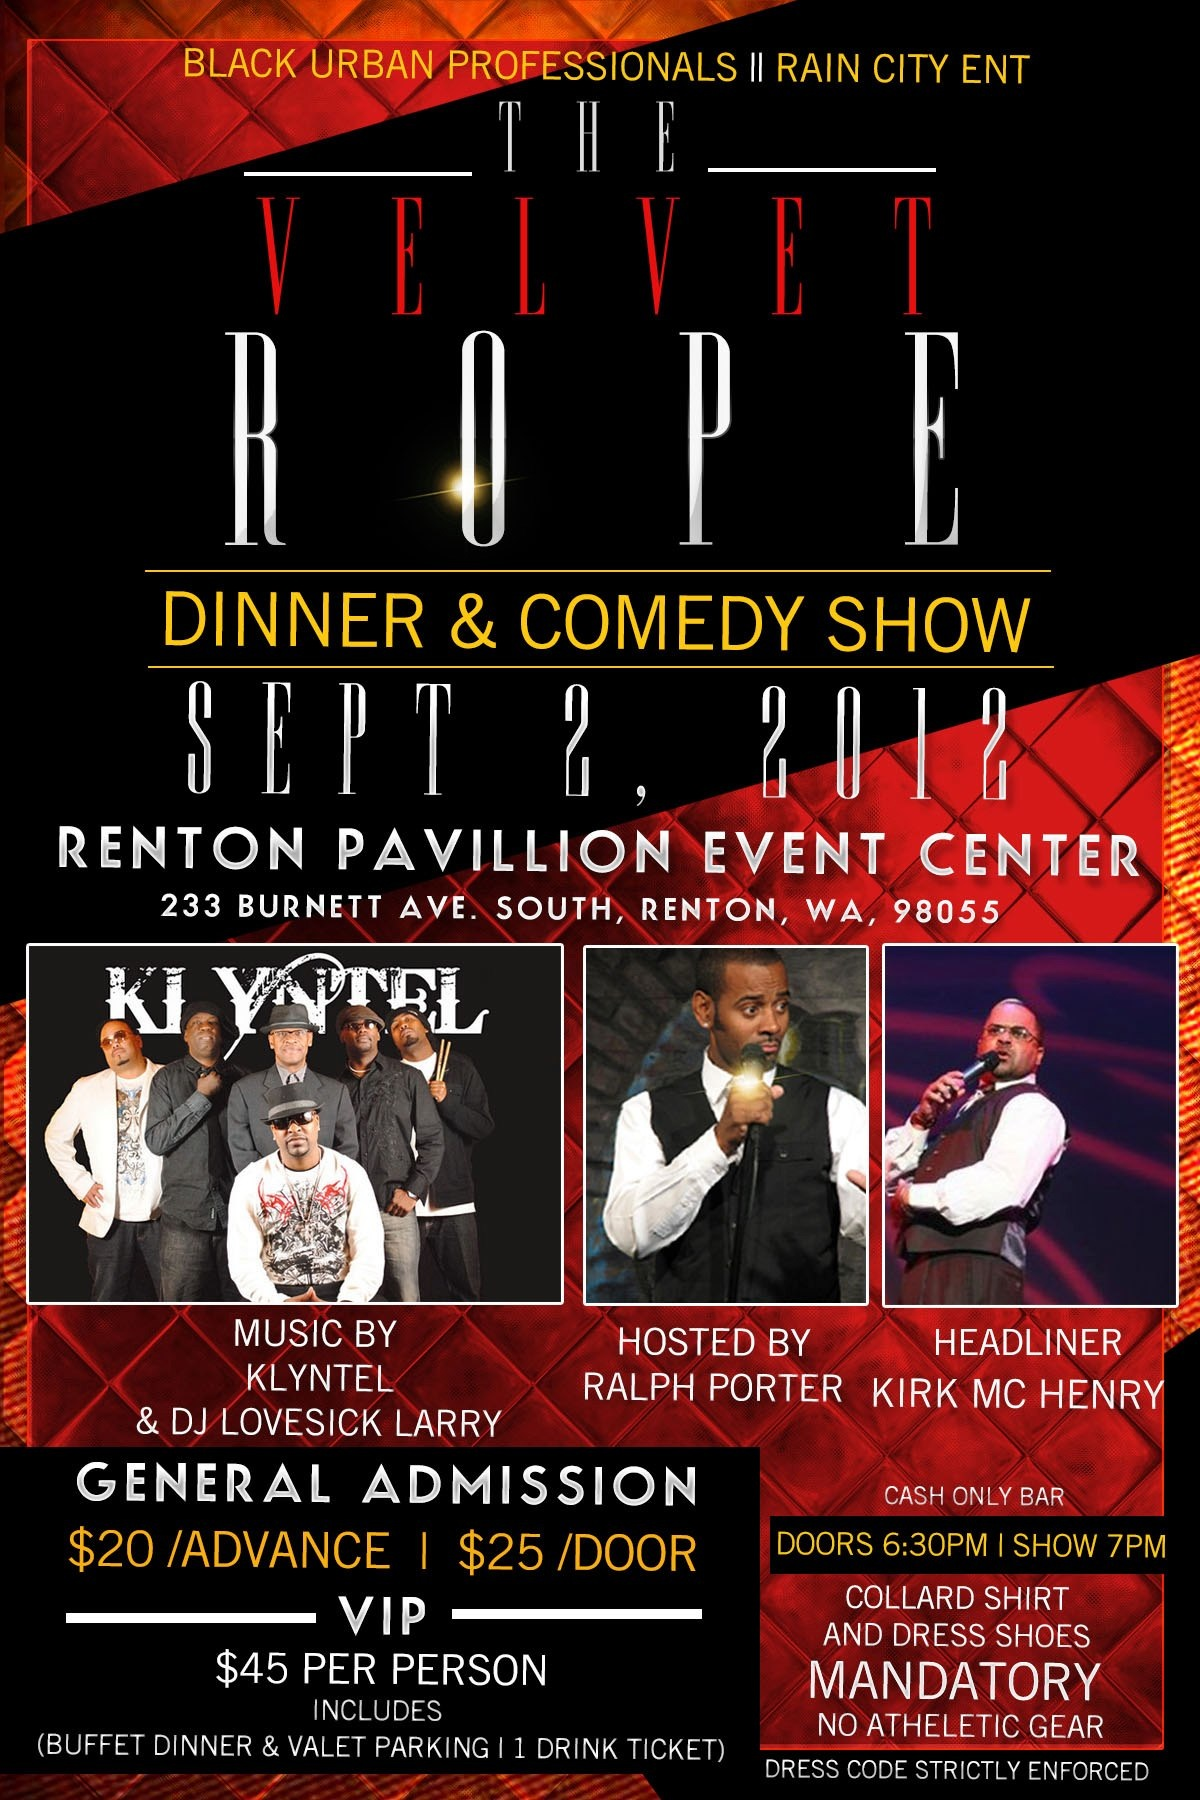 Velvet Rope Dinner and Comedy Show